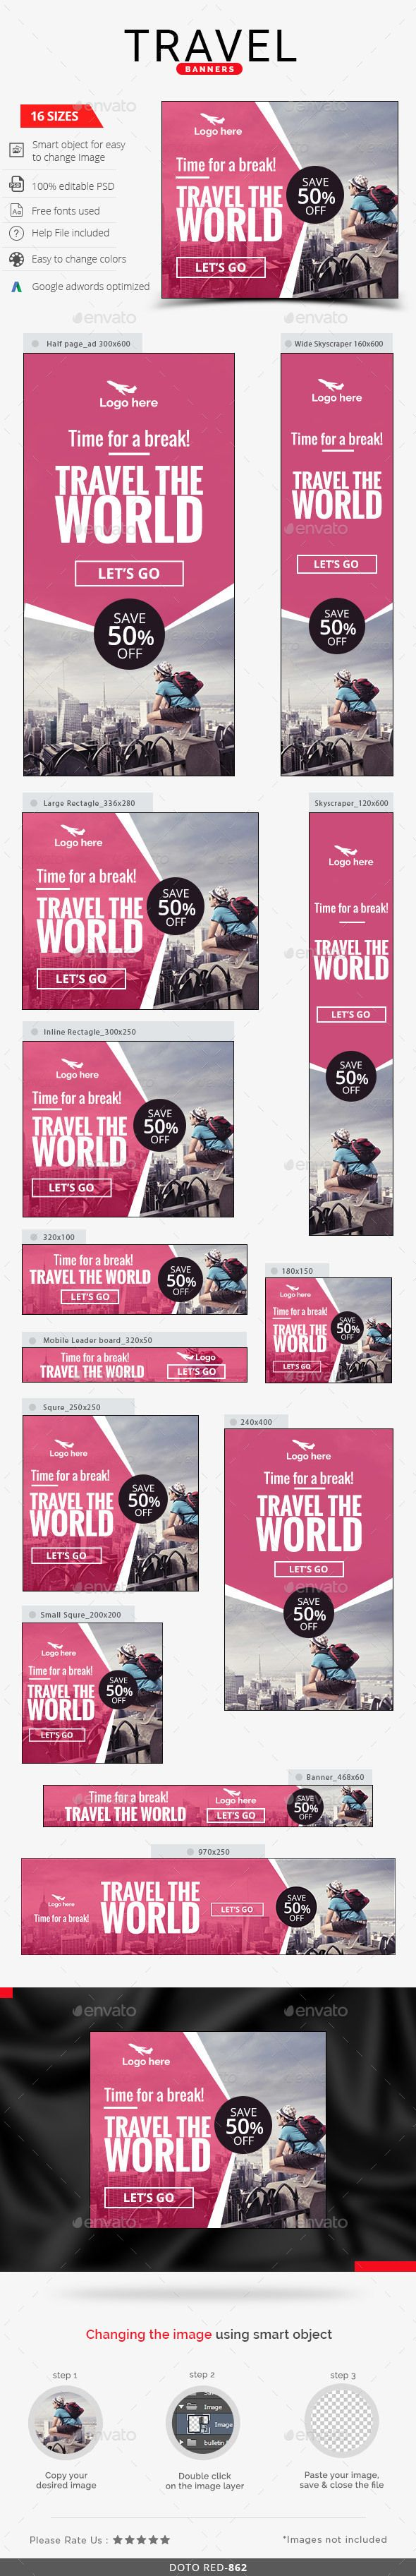 travel banners banner design inspirationweb